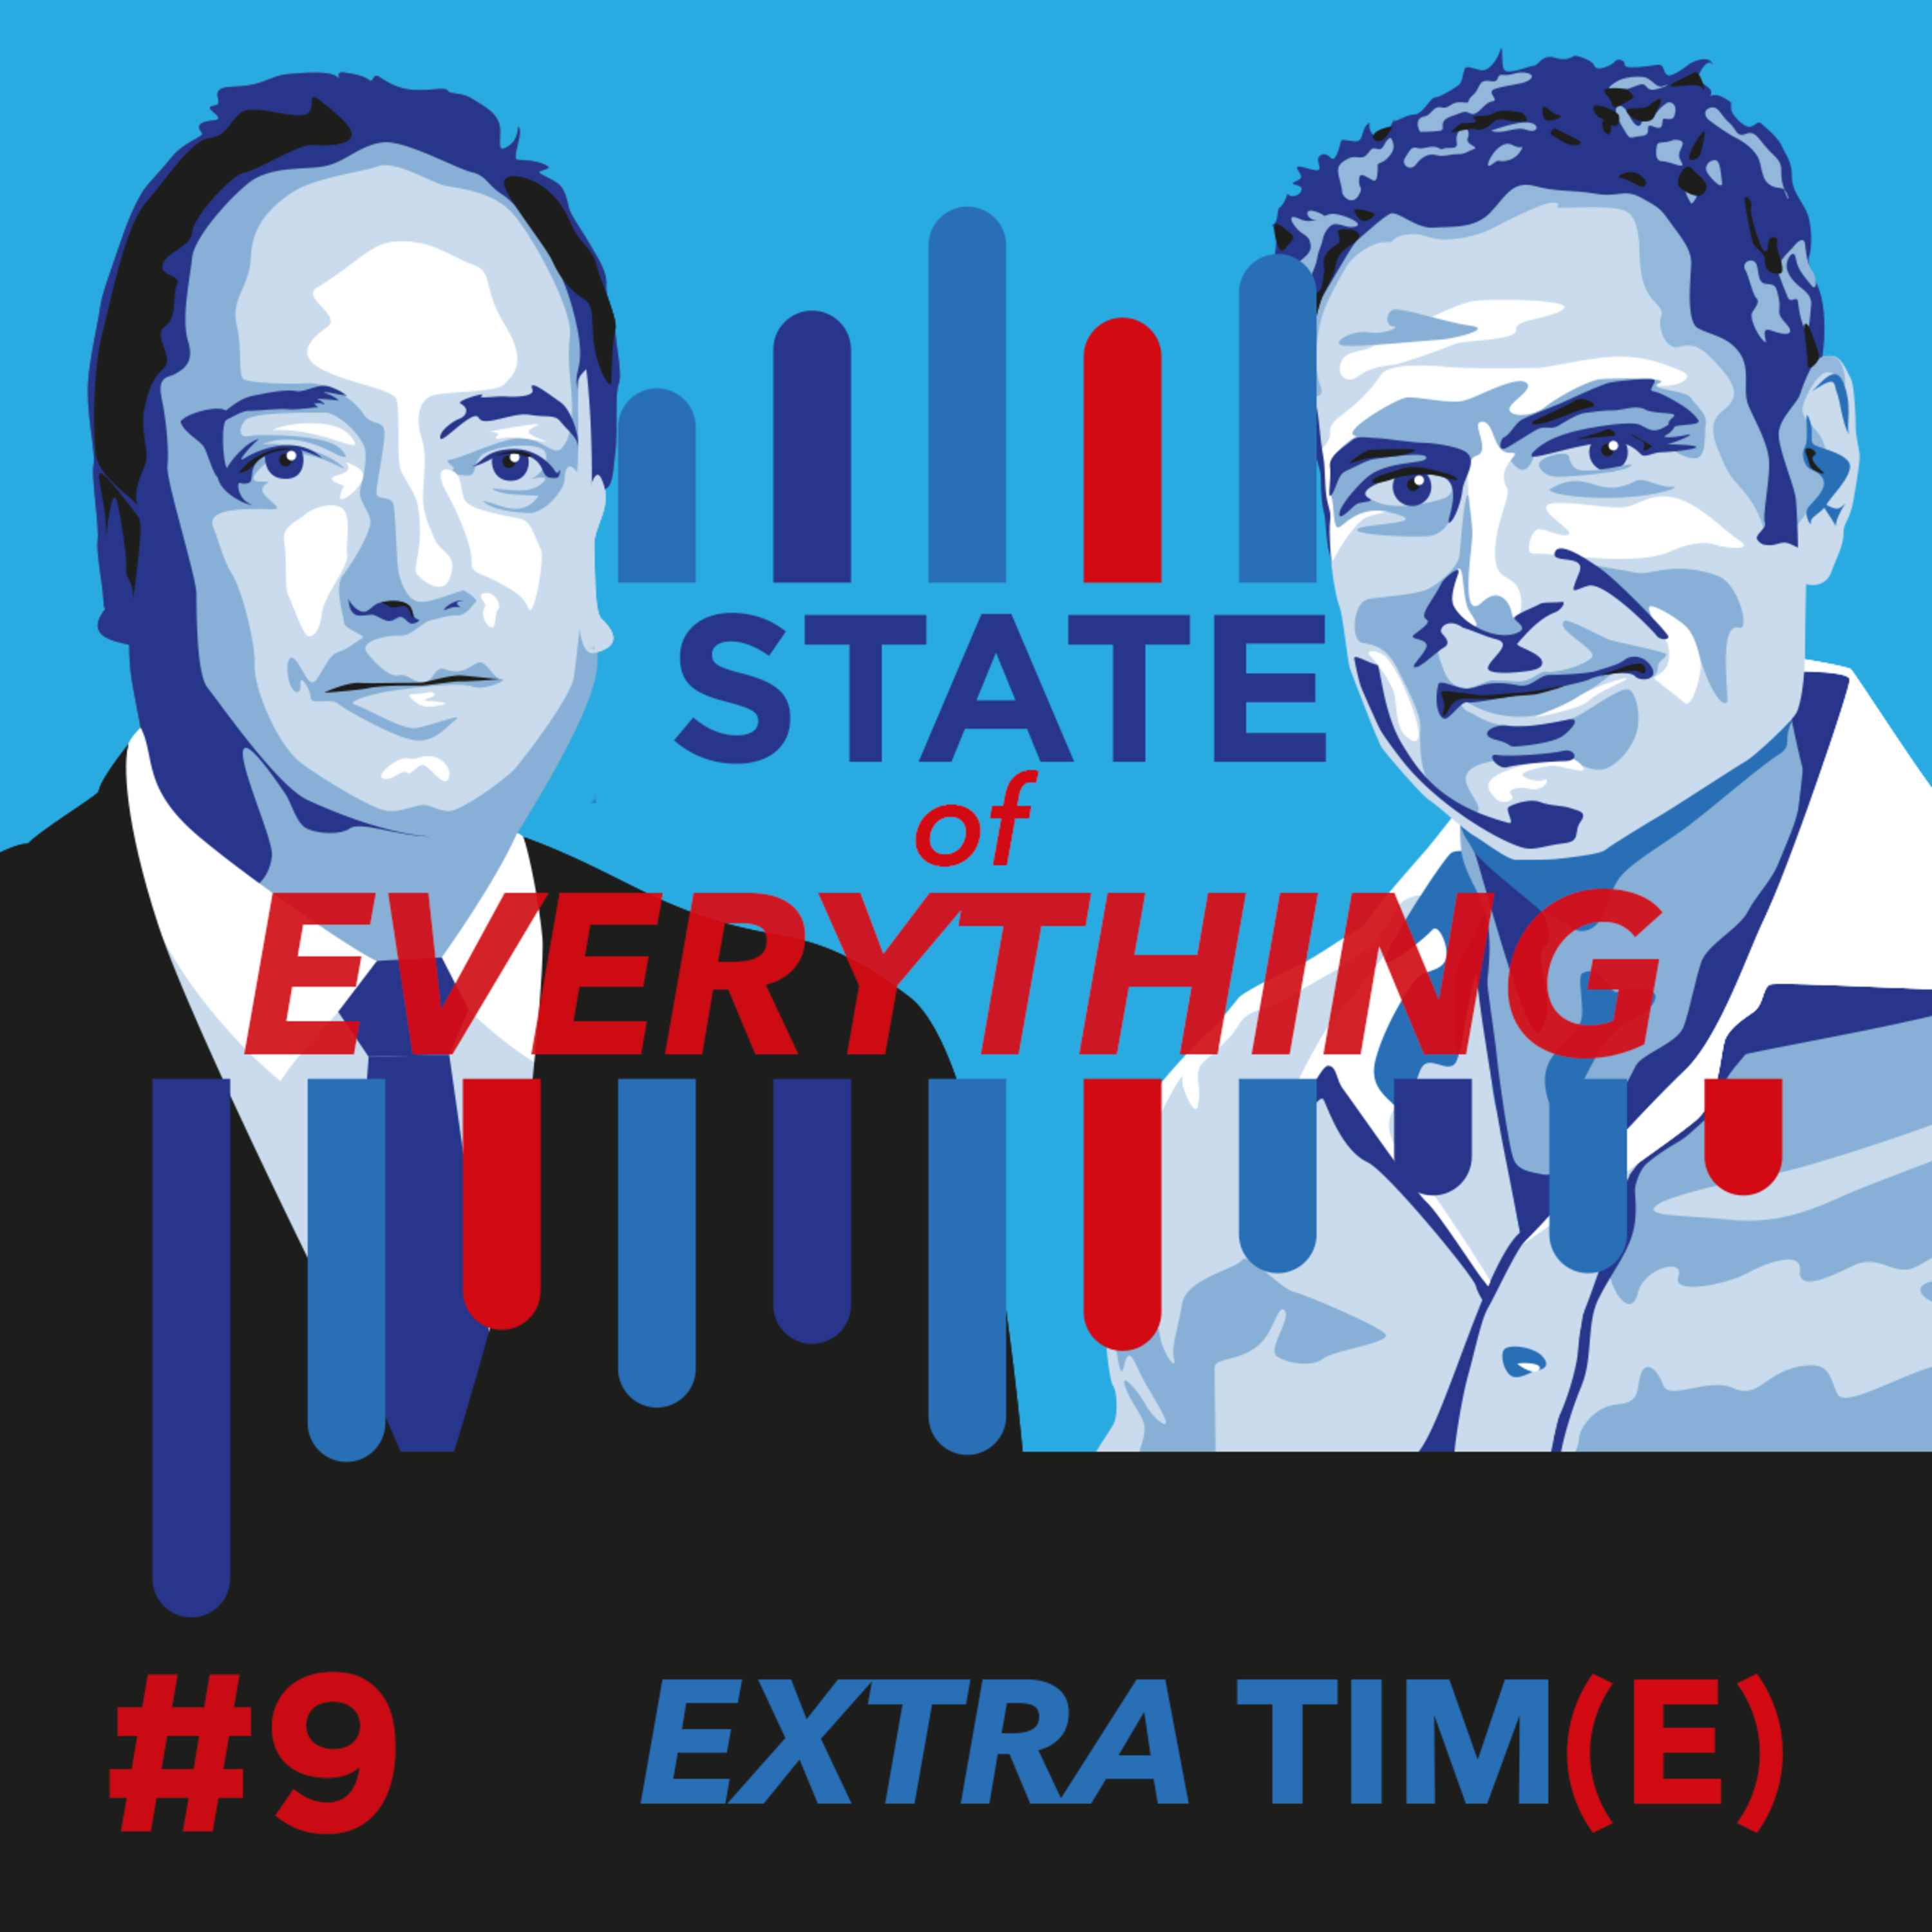 #9 (SOE) Extra Tim: Bonds Bonds everywhere, yet not a drop to invest in?